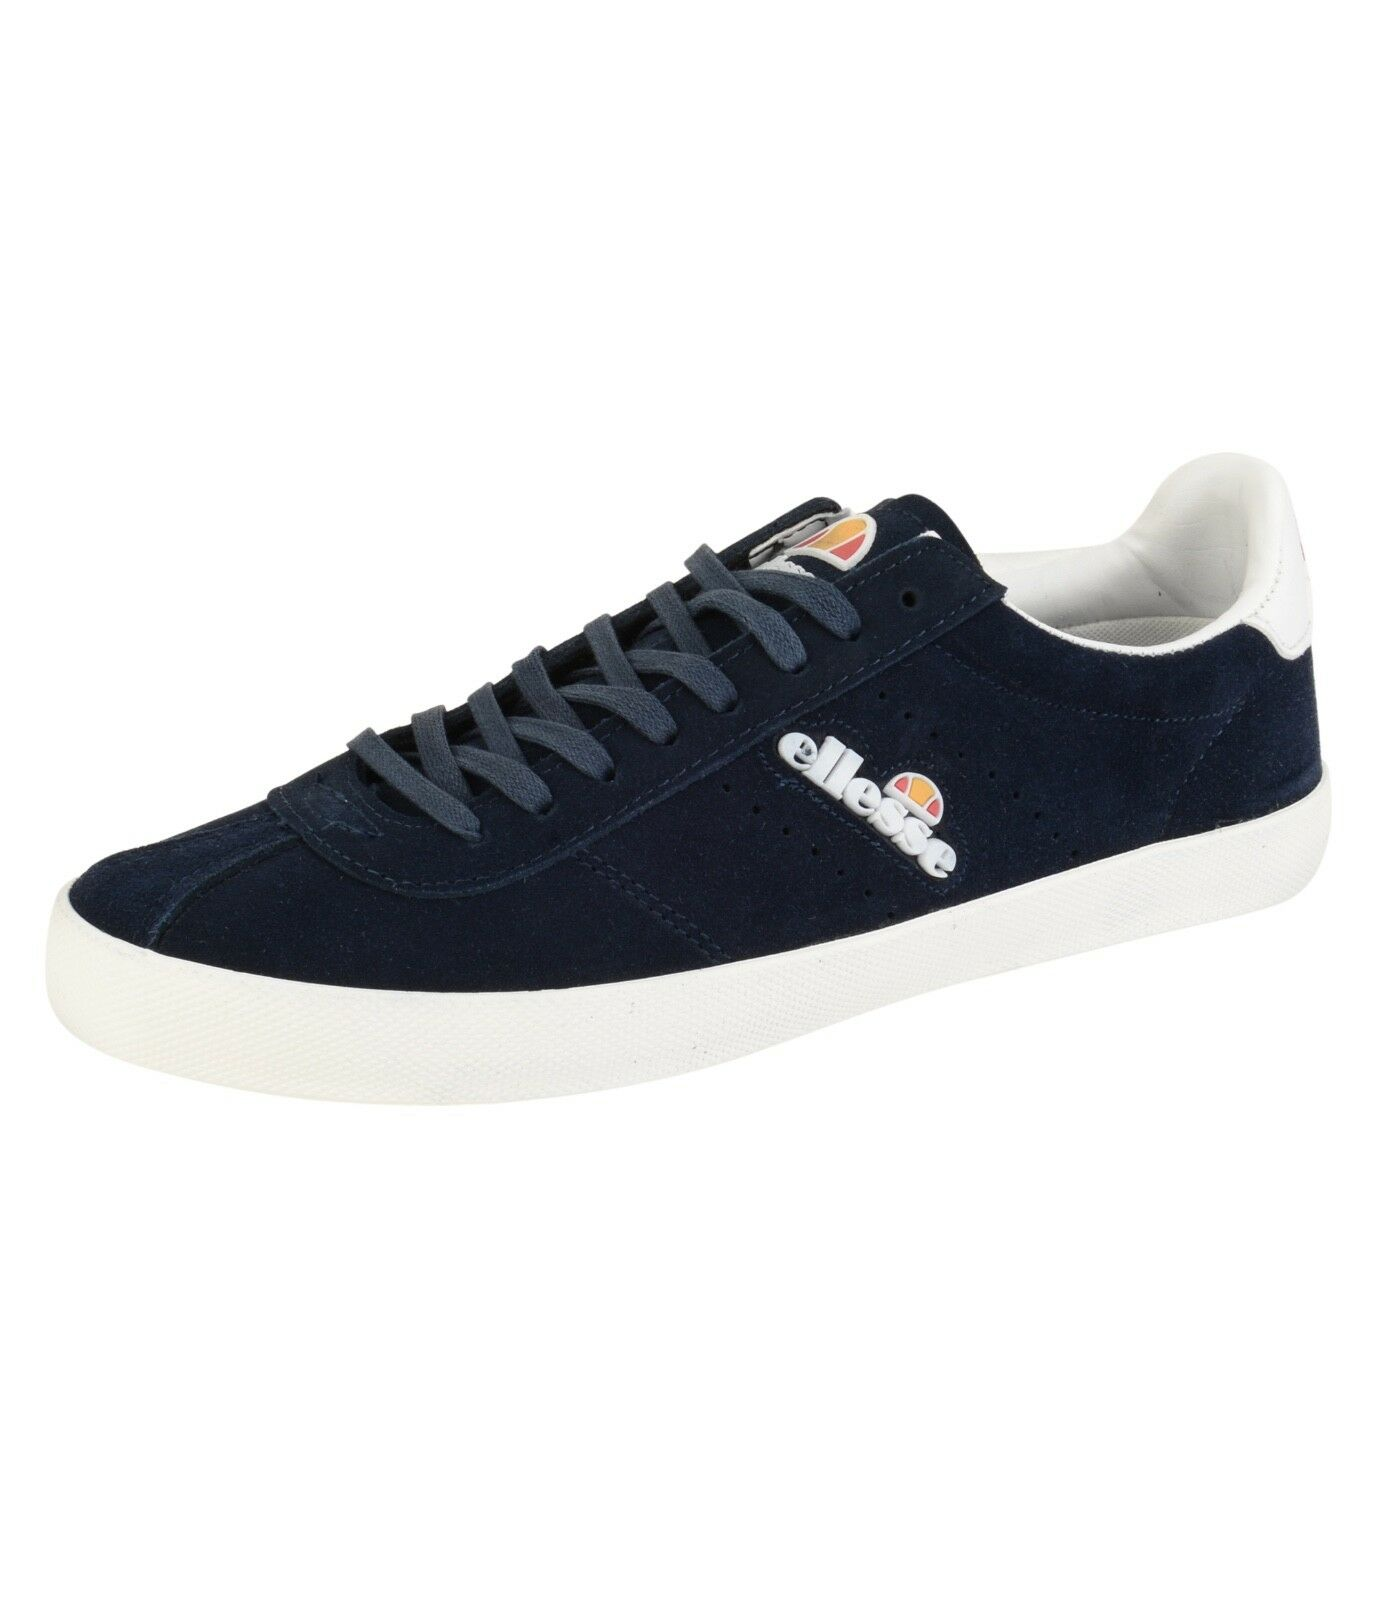 ellesse Avellino Vulc Low Canvas Fashion Shoes Casual Trainers Suede Navy Blue